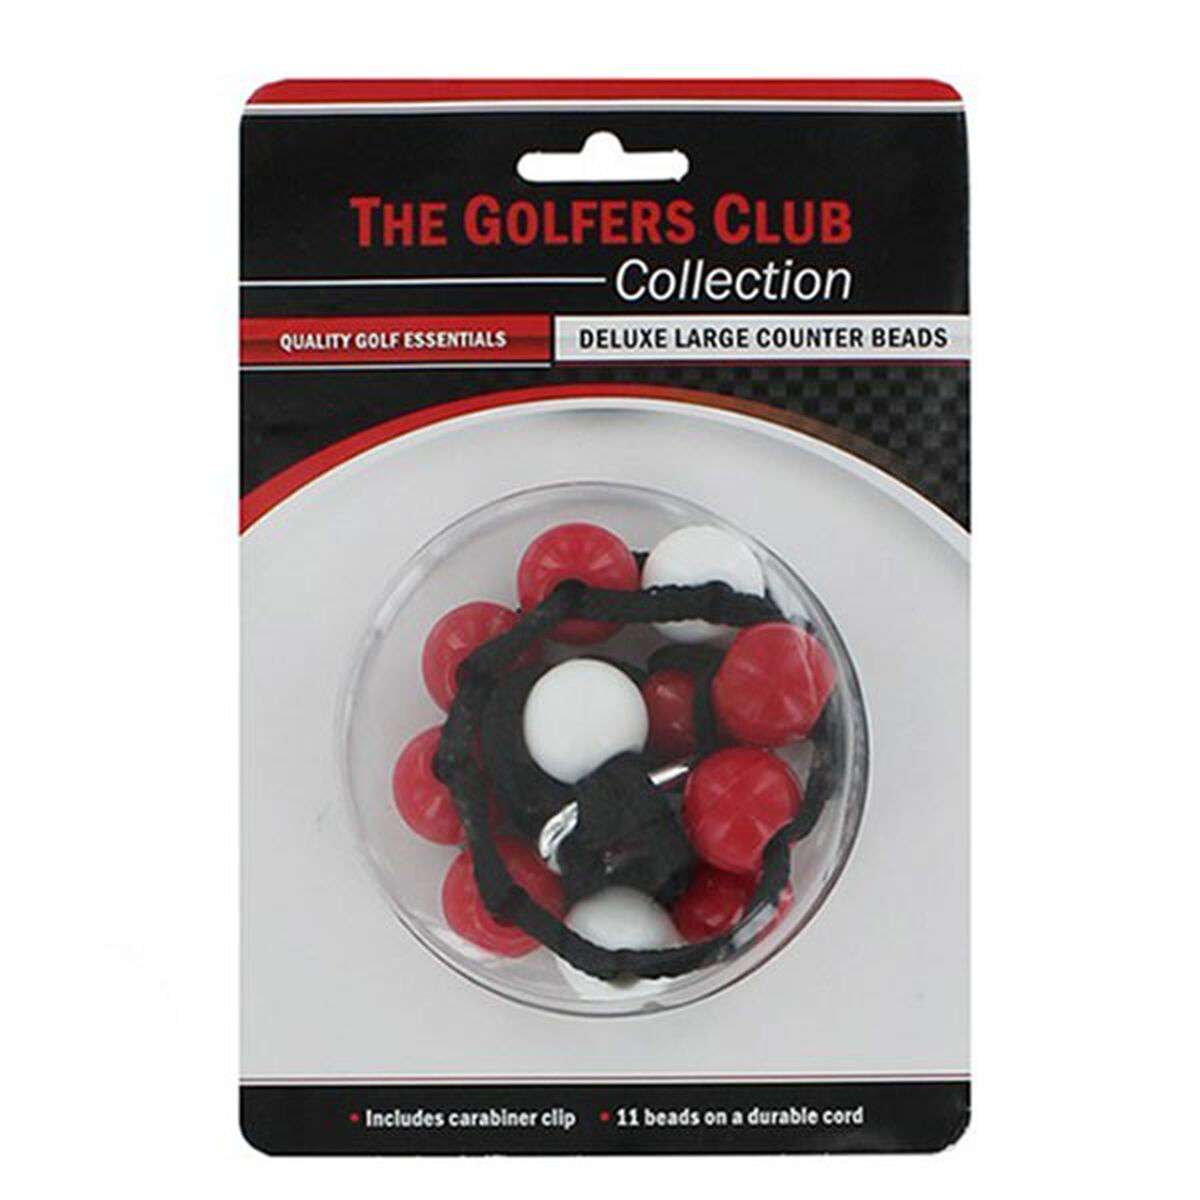 The Golfers Club Deluxe Large Counter Beads, Male, Red/white, One size | American Golf